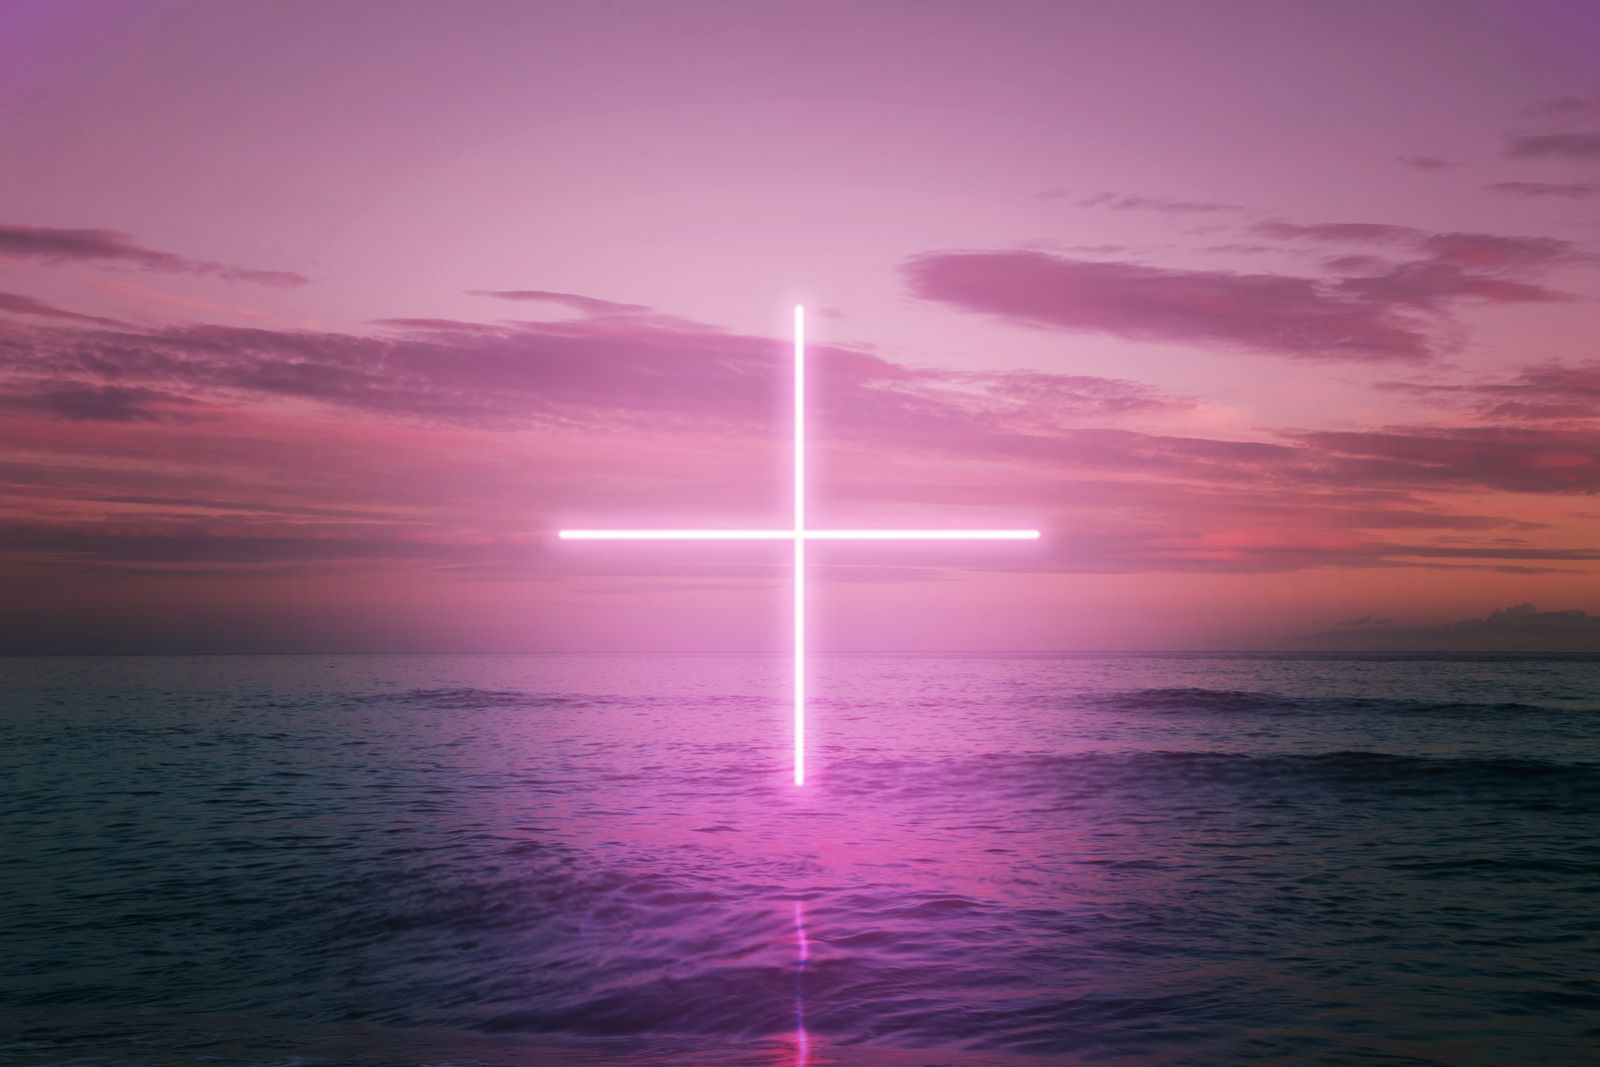 Creative picture performance of digital neon cross in the middle of the sea with sunset sky.